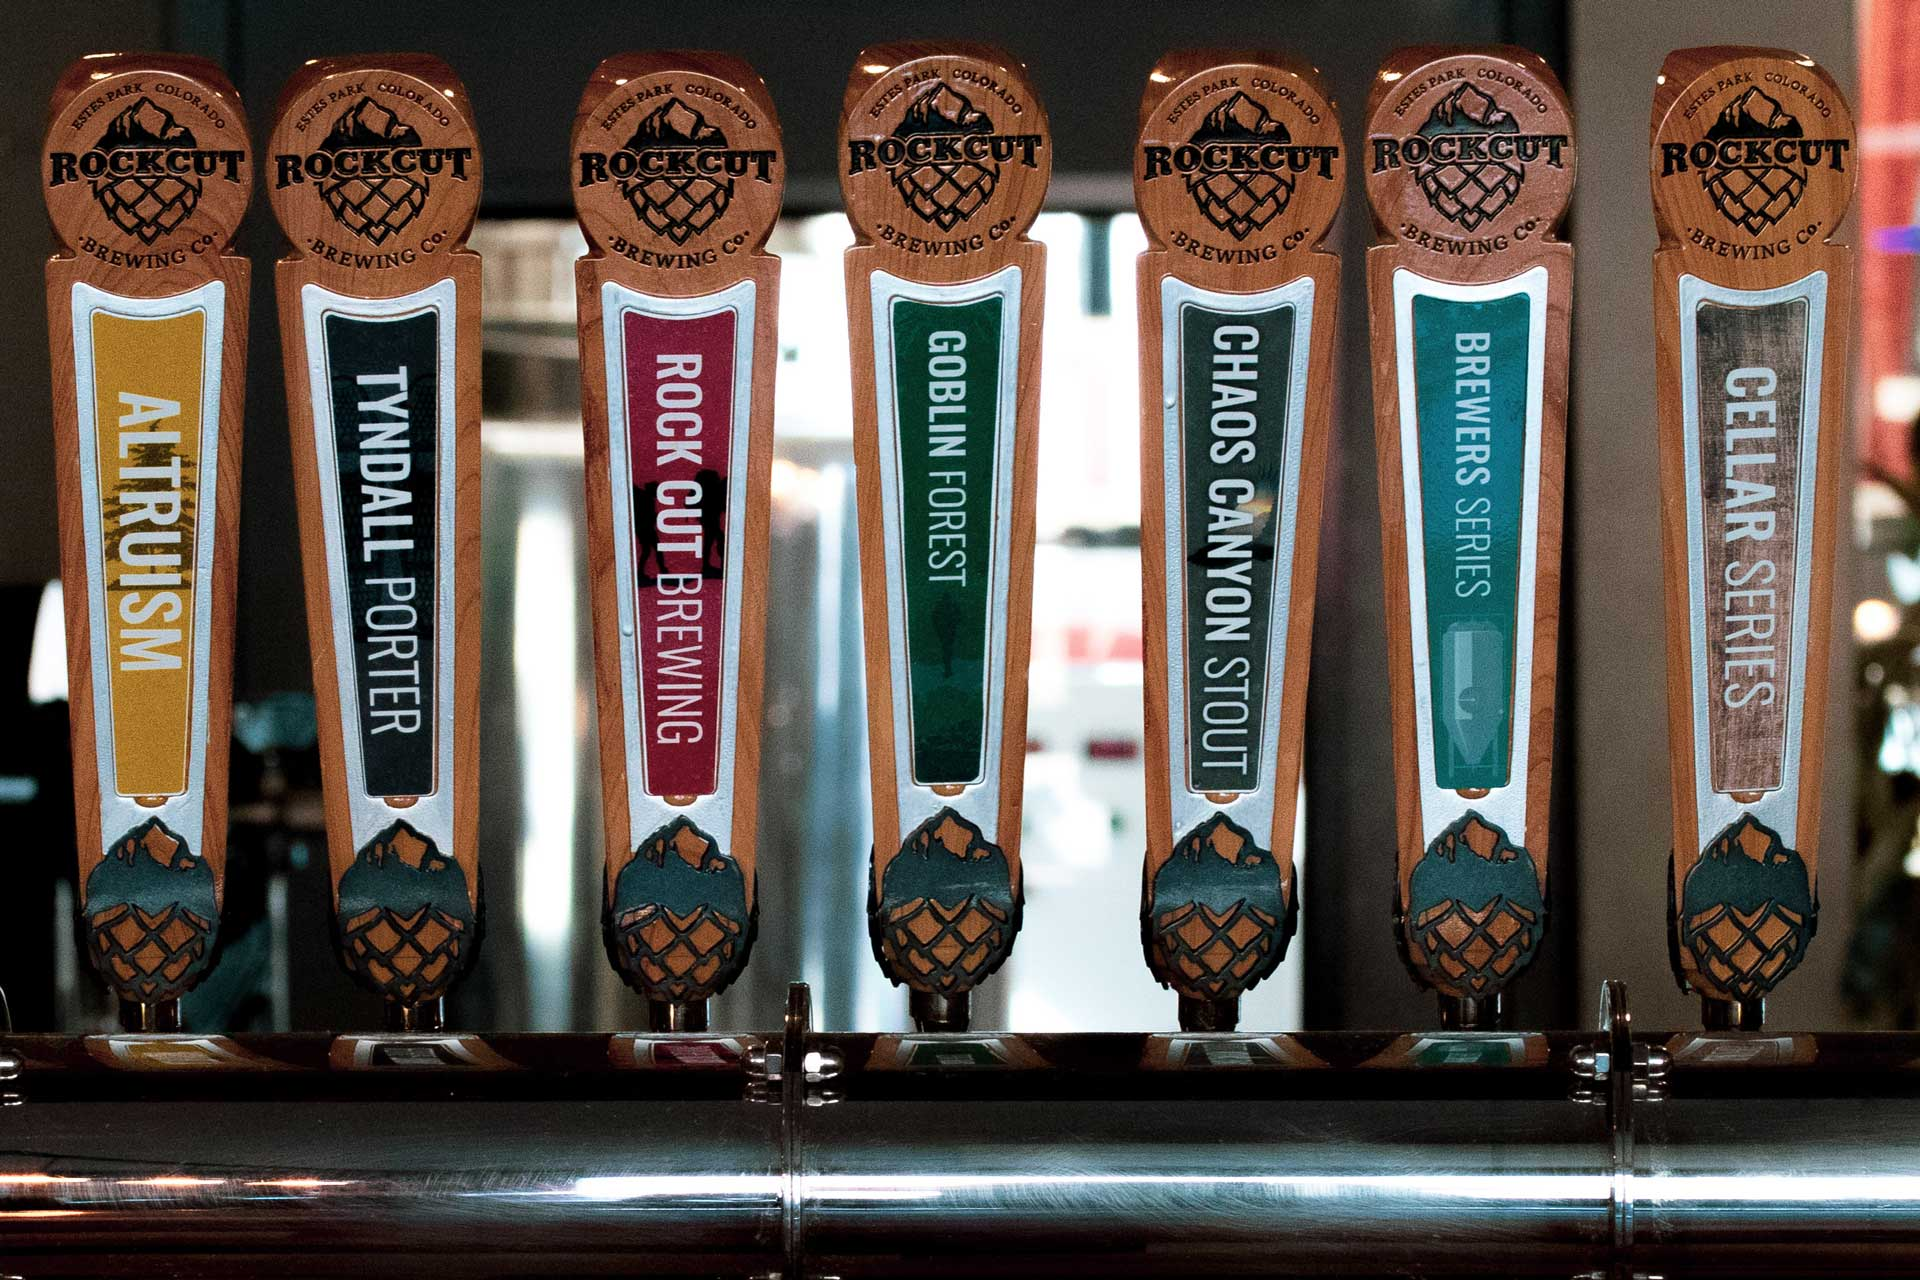 You can fill your growler with what's on tap at Rock Cut Brewing